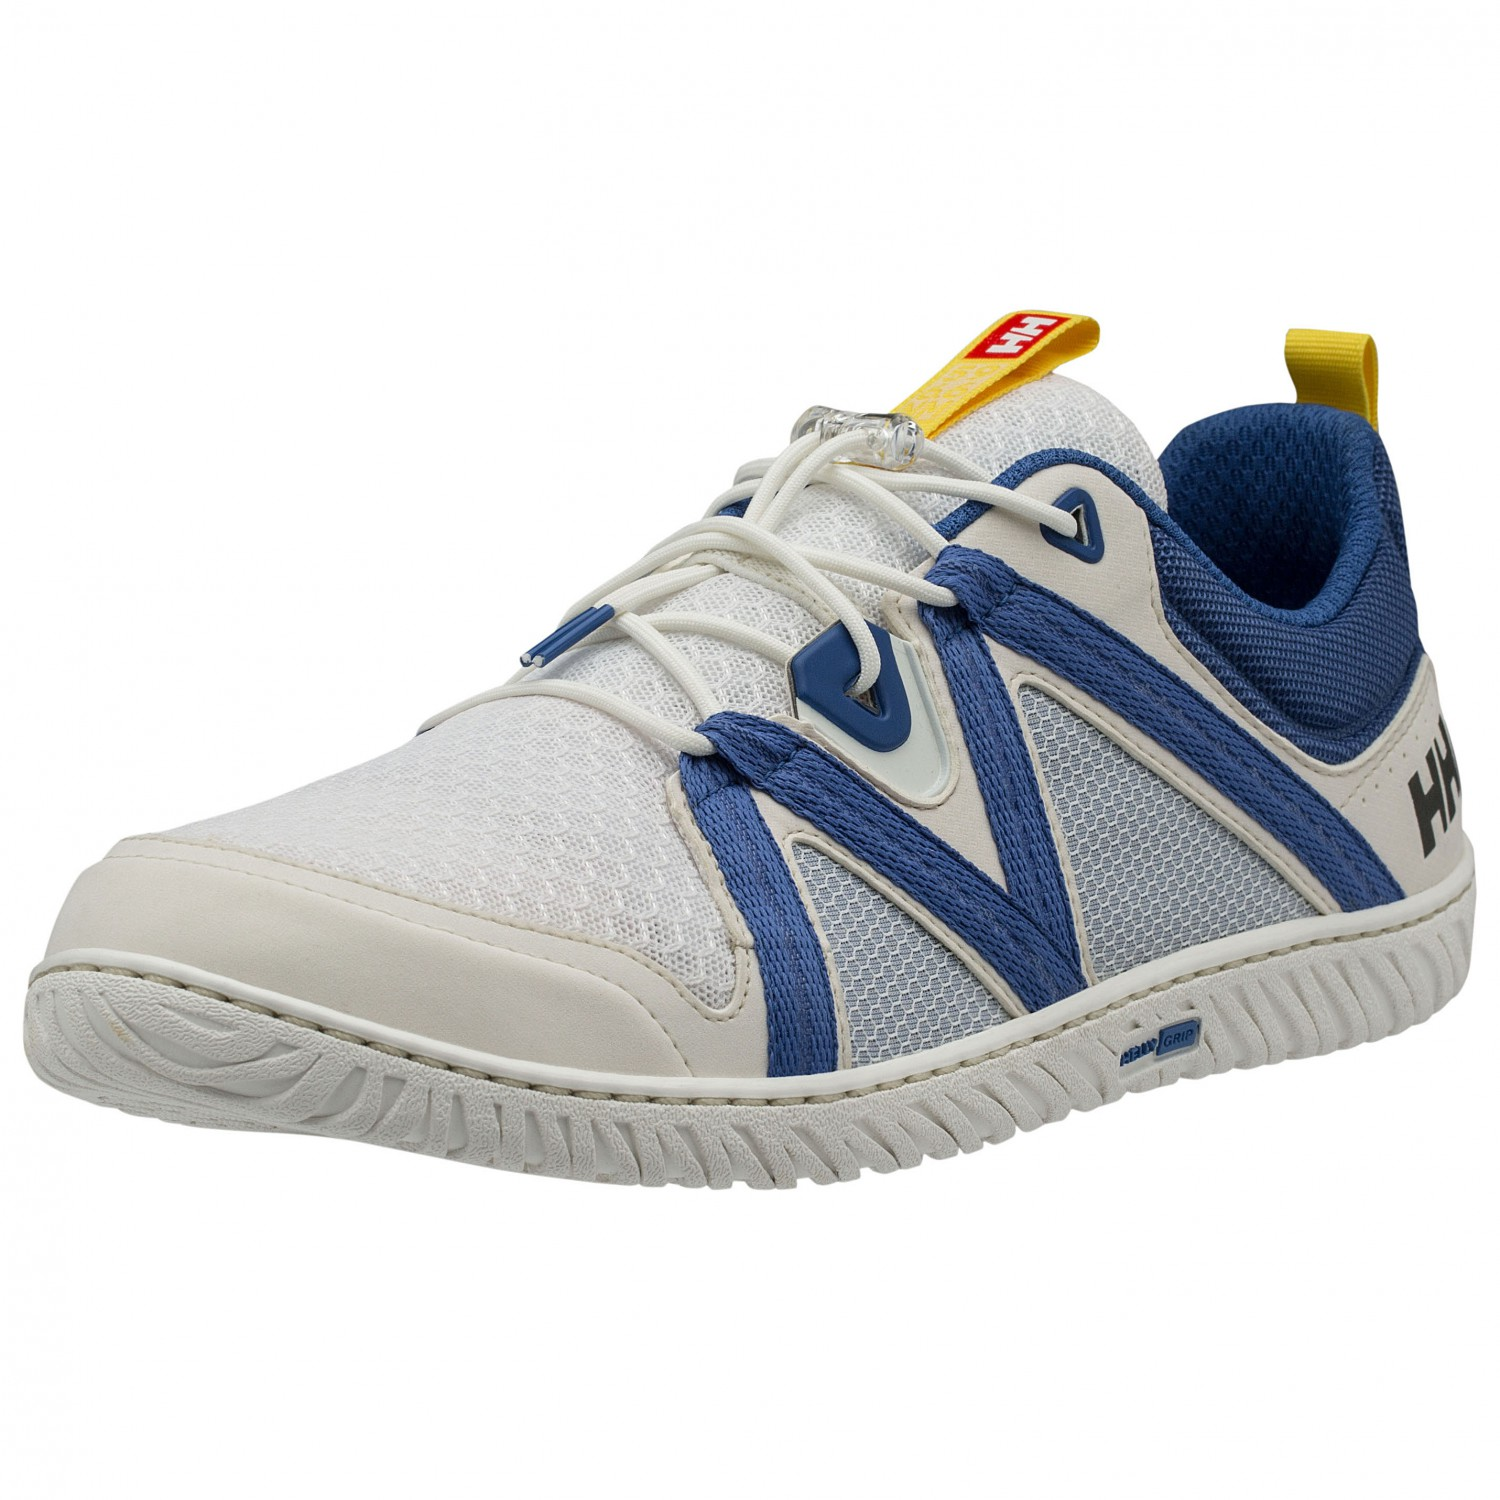 c57cfbb2fd5 Helly Hansen - HP Foil F-1 - Water shoes - Off White / Olympian Blue | 10,5  (US)